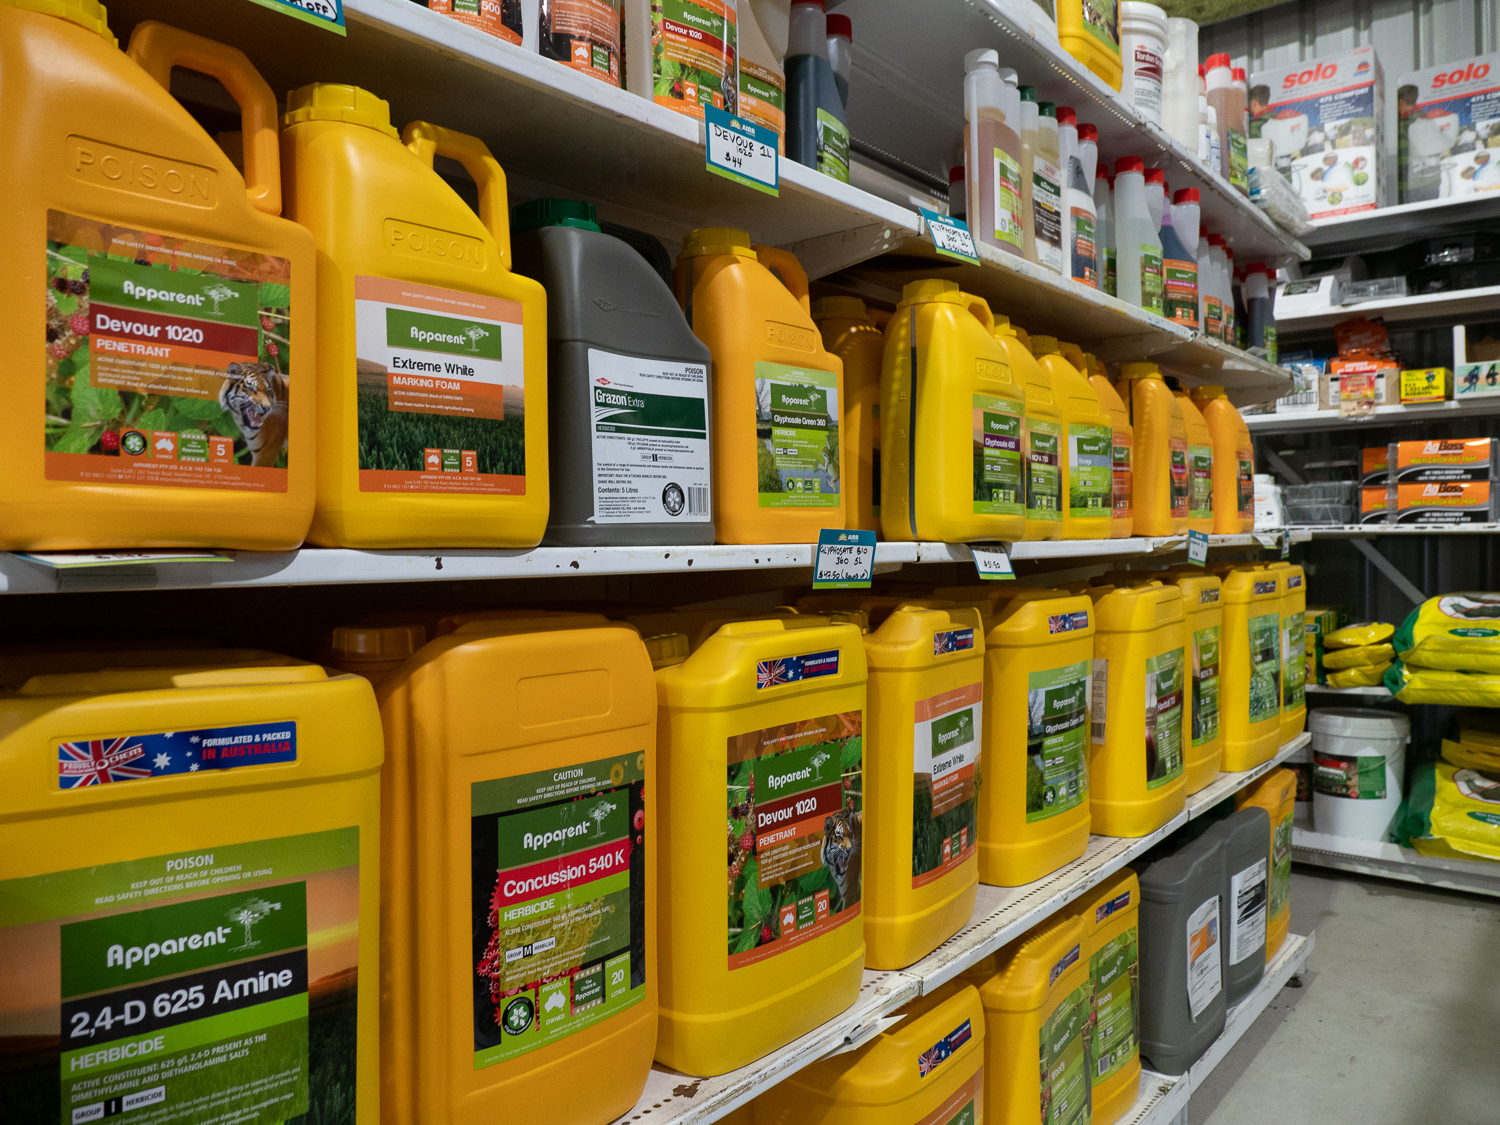 Pesticides & Insecticides